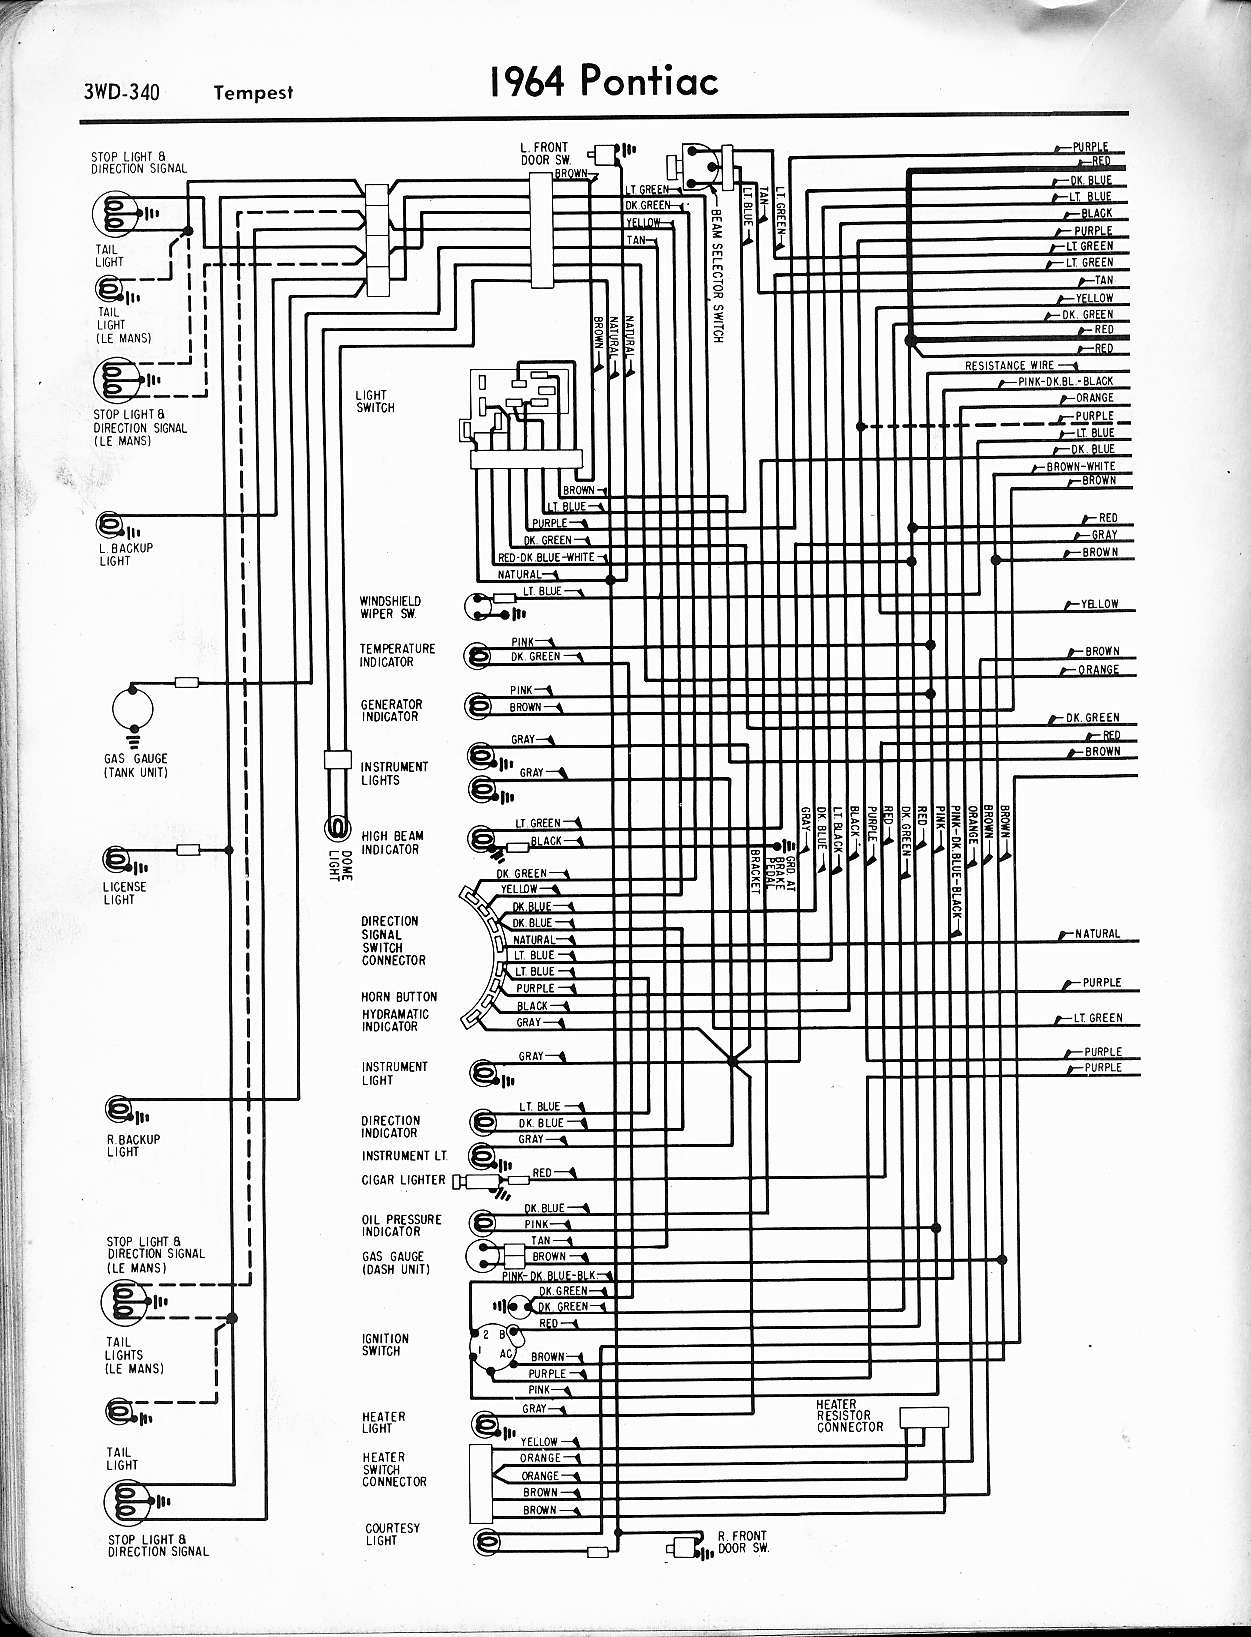 Pontiac Parisienne Wiring Diagram Real 86 Bonneville Fuse Box 65 Pictures U2022 Rh Mapavick Co Uk 1964